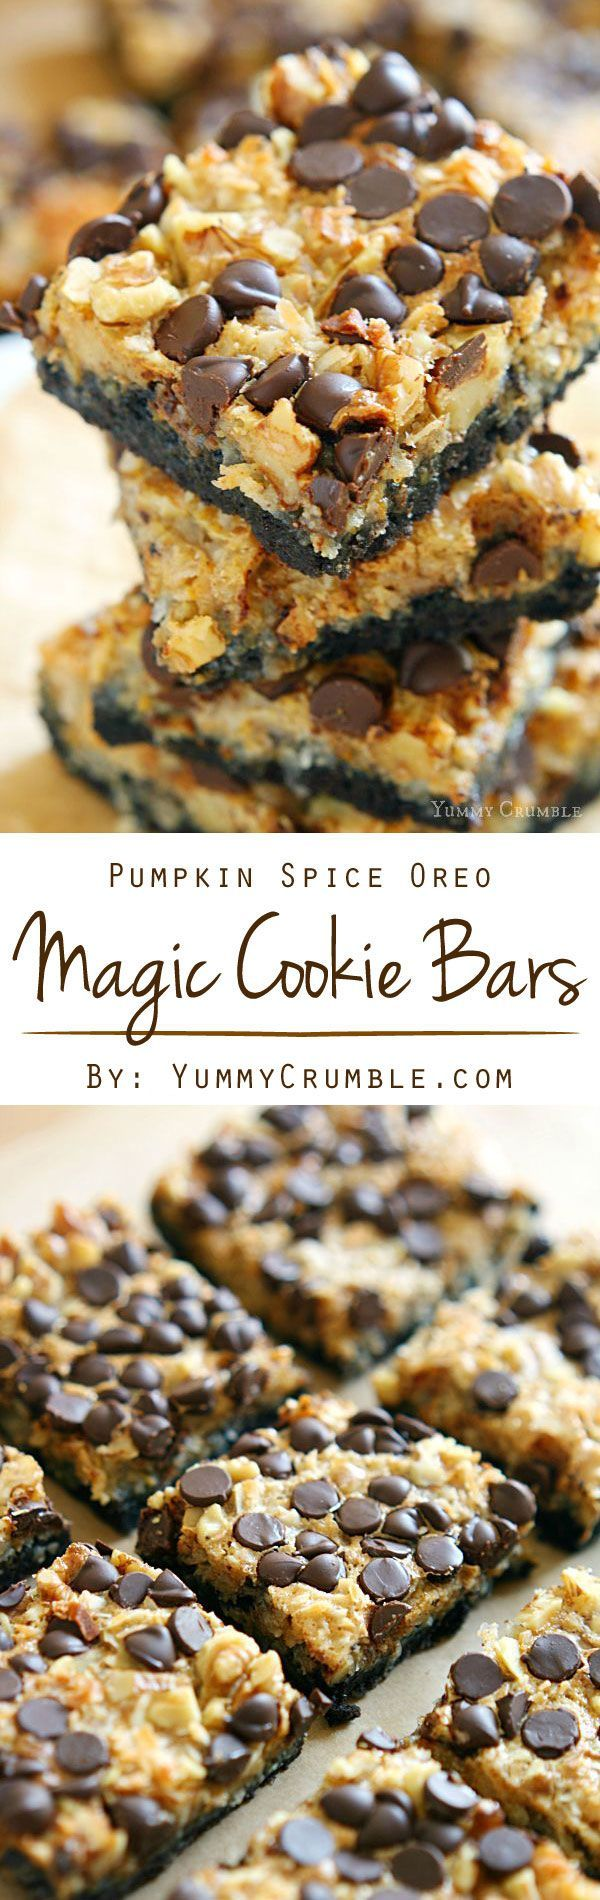 ... pumpkin spiced chewy filling, these Pumpkin Spice Oreo Cookie Bars